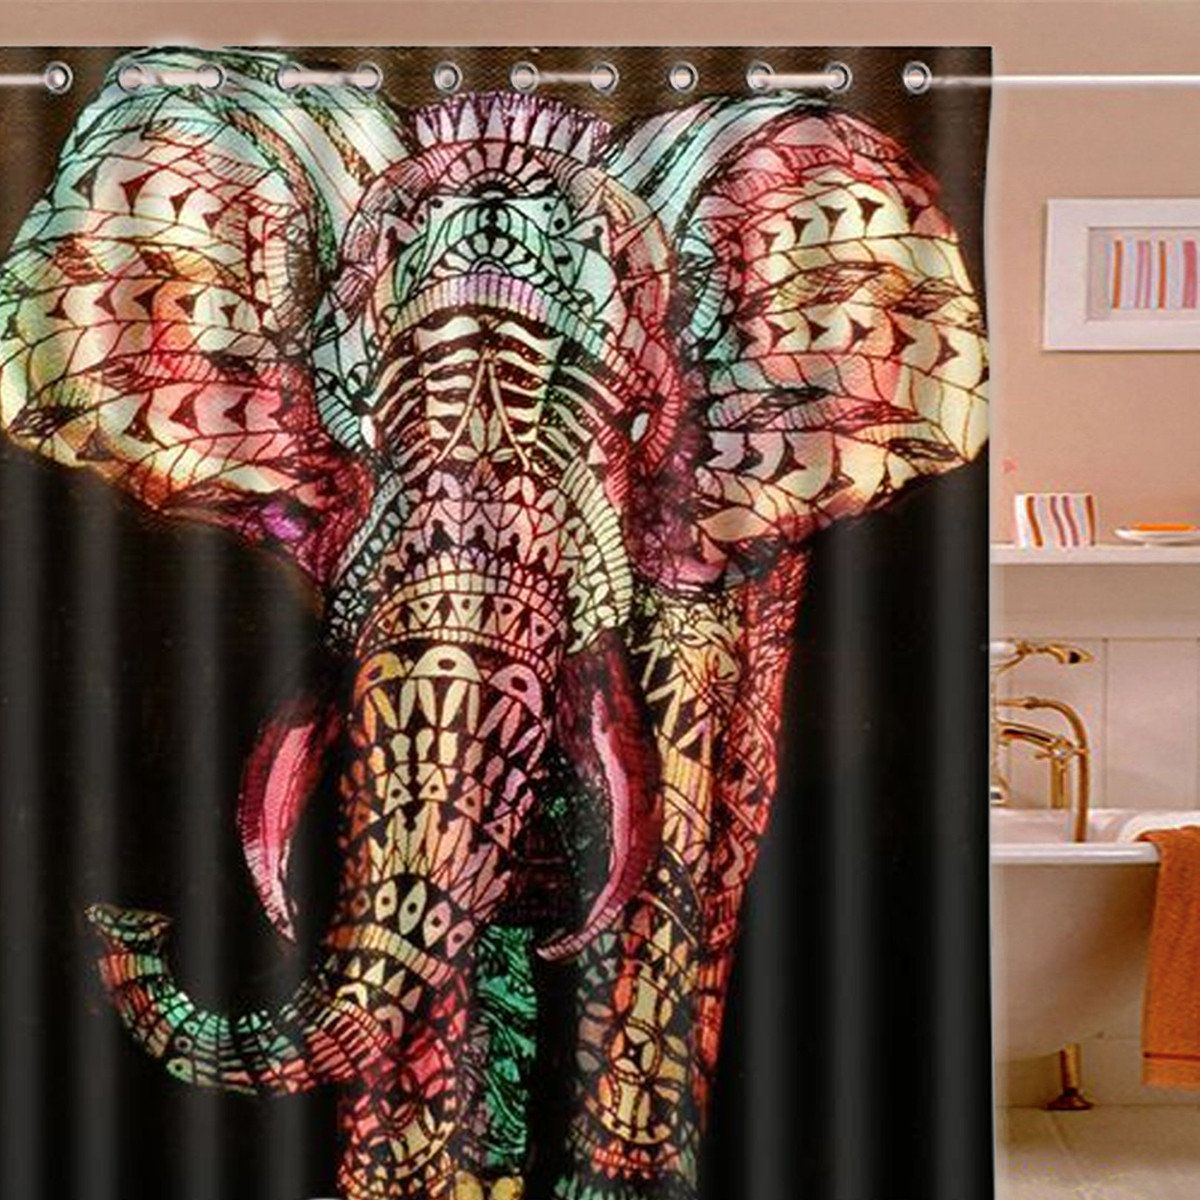 165 180cm Colorful Elephant Waterproof Printing Shower Curtain